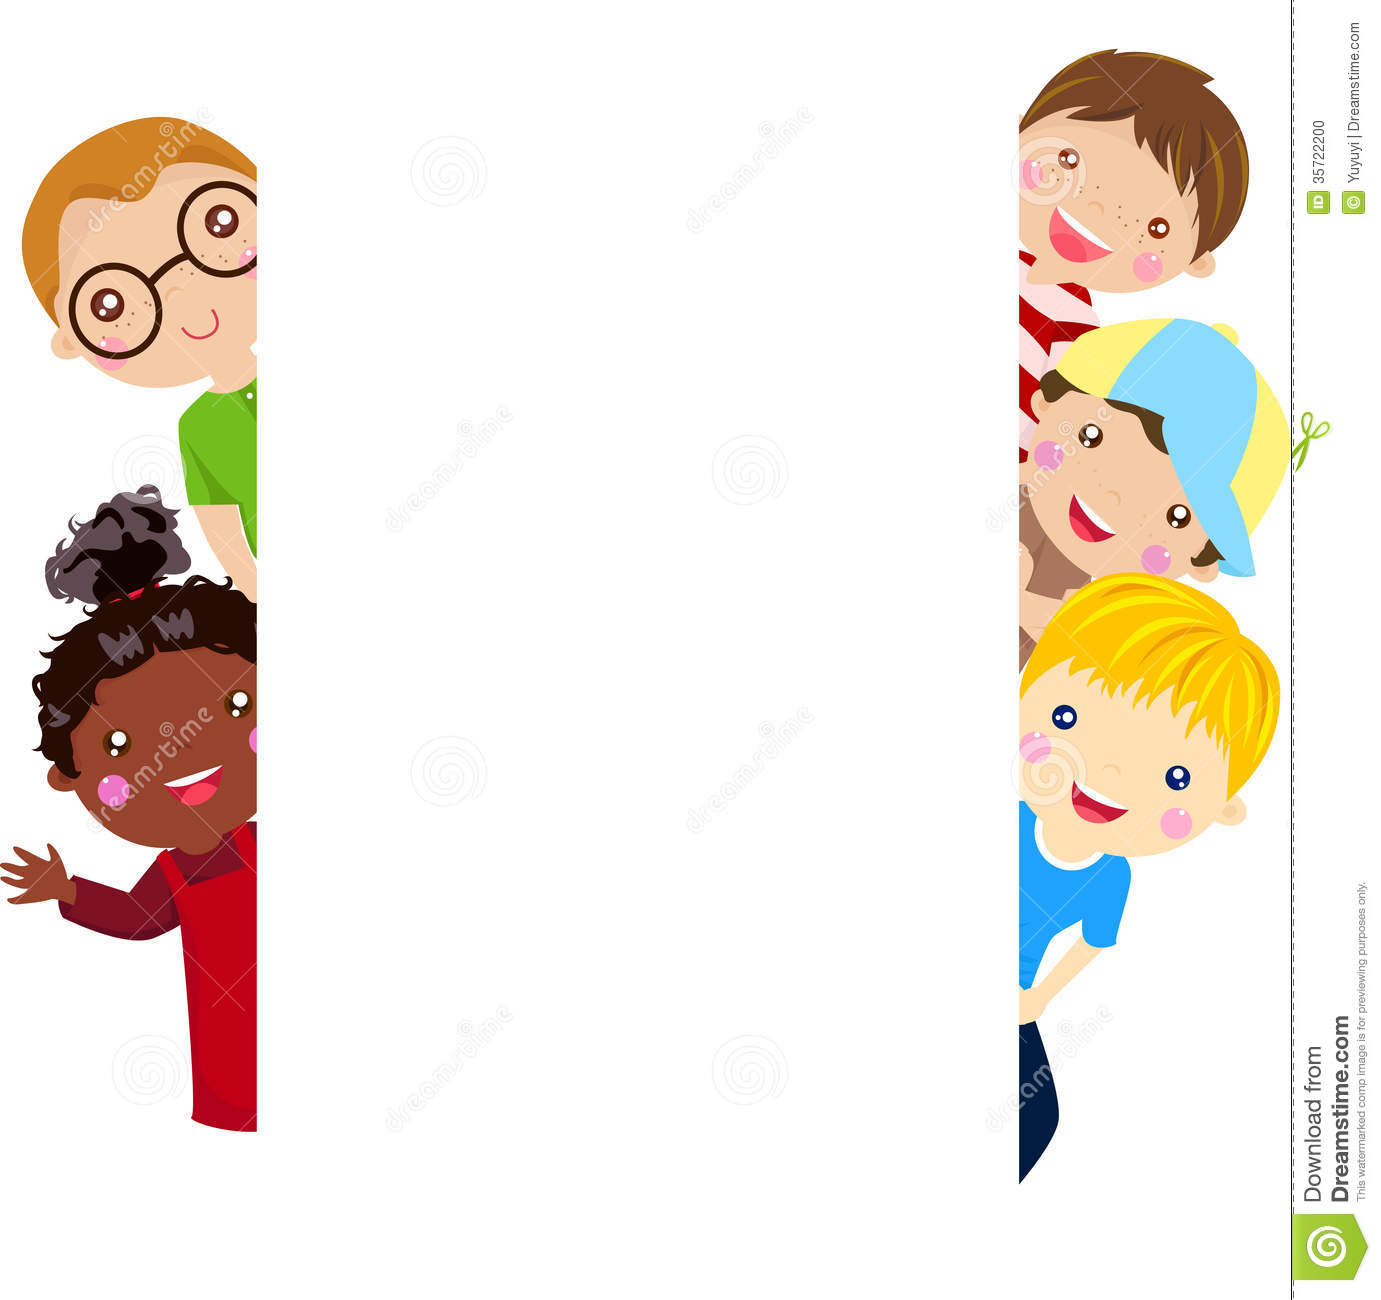 Group Of Kids Having Fun And Banner Stock Vector. Pretty Address Labels. Album Decals. Mask Stickers. Birthday Celebration Stickers. Professional Business Signs Of Stroke. Cleveland Murals. 3d Mural Rajasthani Art Murals. Gender Neutral Signs Of Stroke